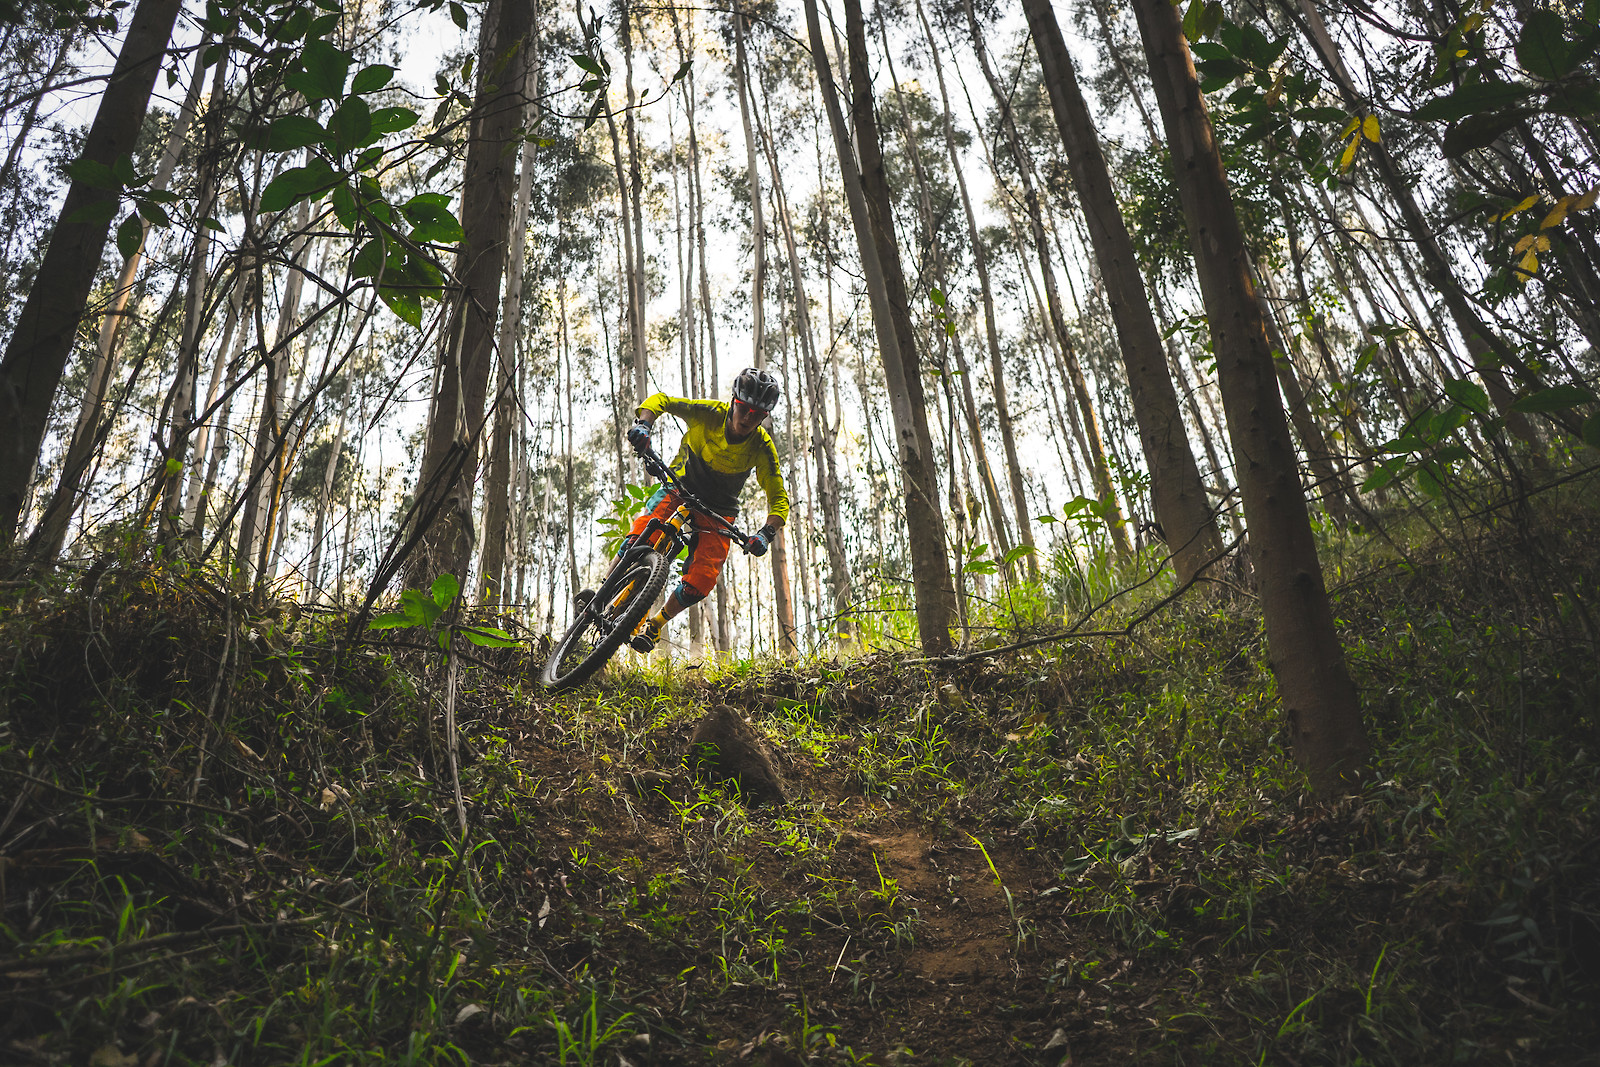 The Set Up pt 2 - Its.Peteee - Mountain Biking Pictures - Vital MTB